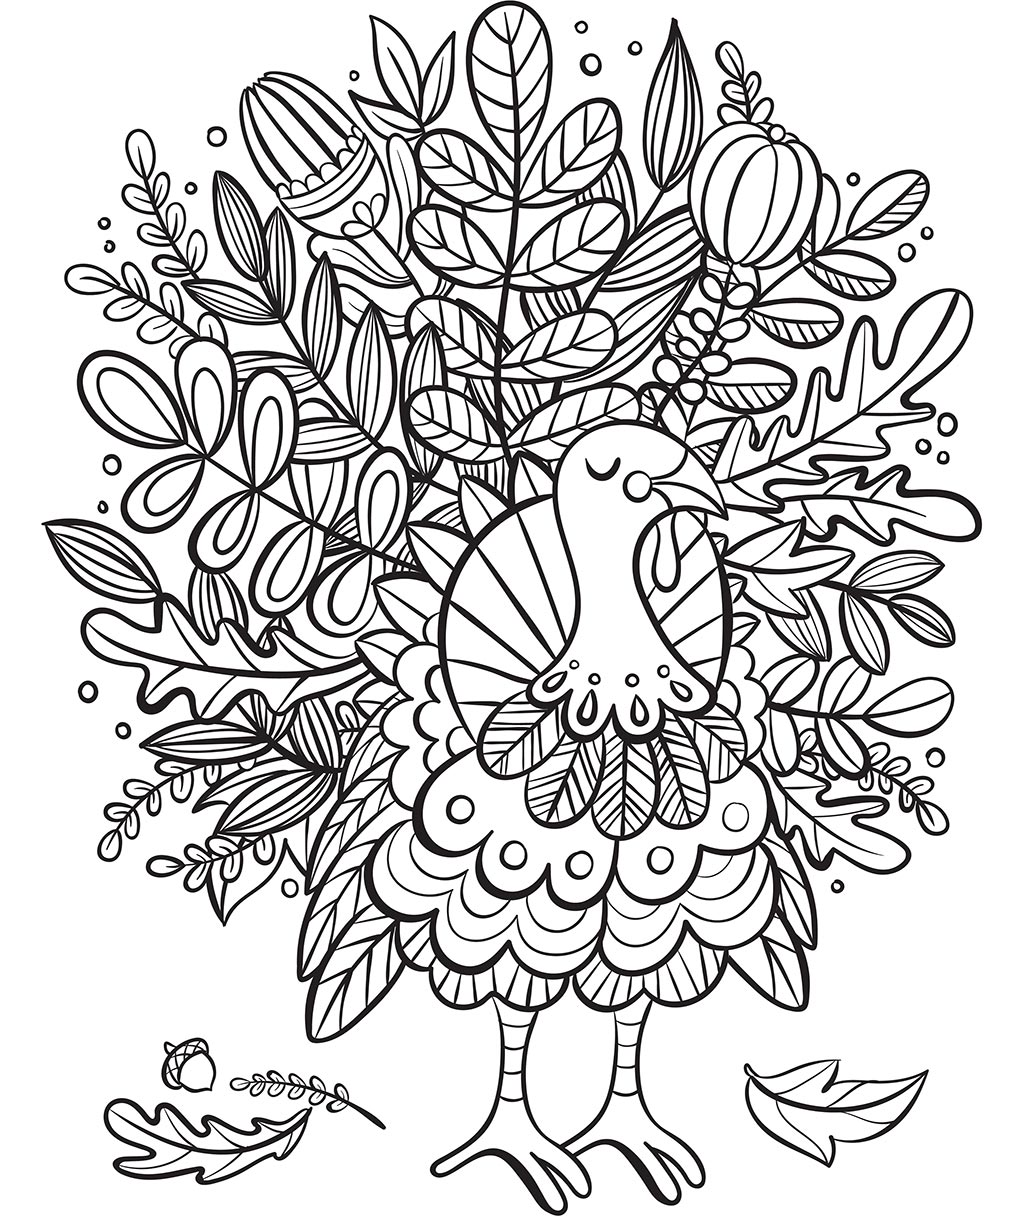 Thanksgiving U S A Free Coloring Pages Crayola Com